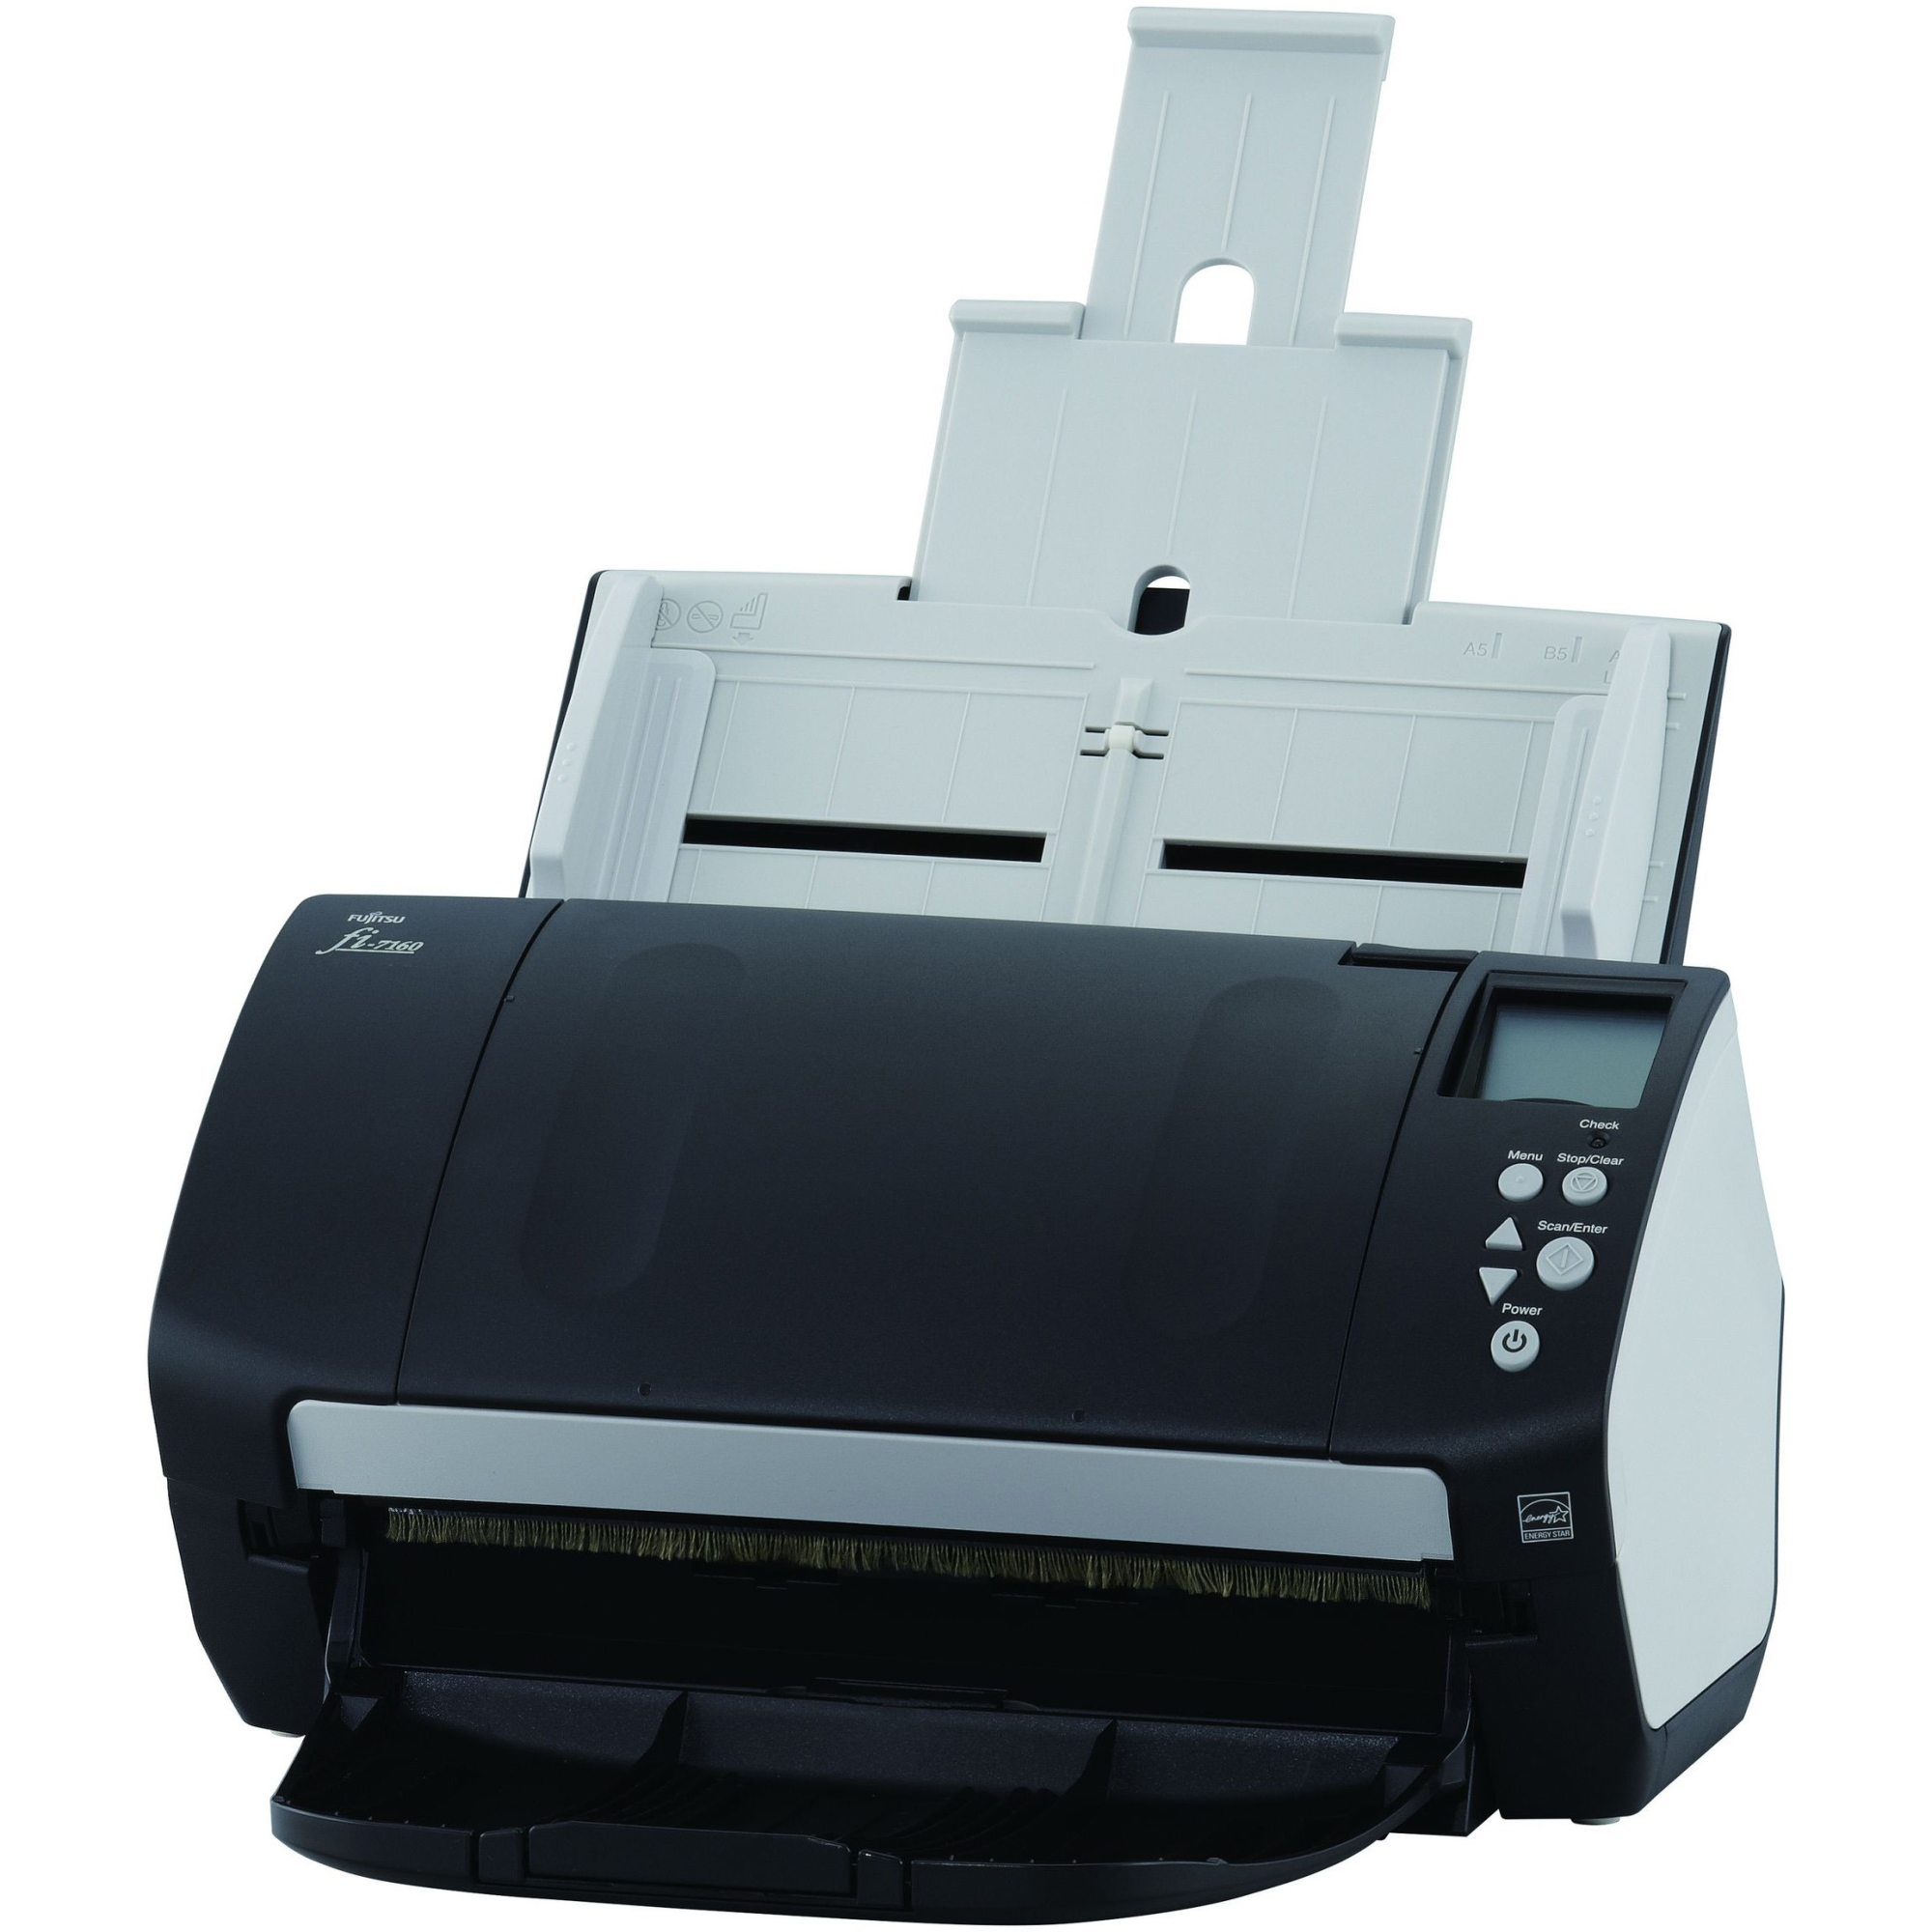 Fujitsu Fi-7160 Sheetfed Scanner - 600 Dpi Optical - 24-bit Color - 8-bit